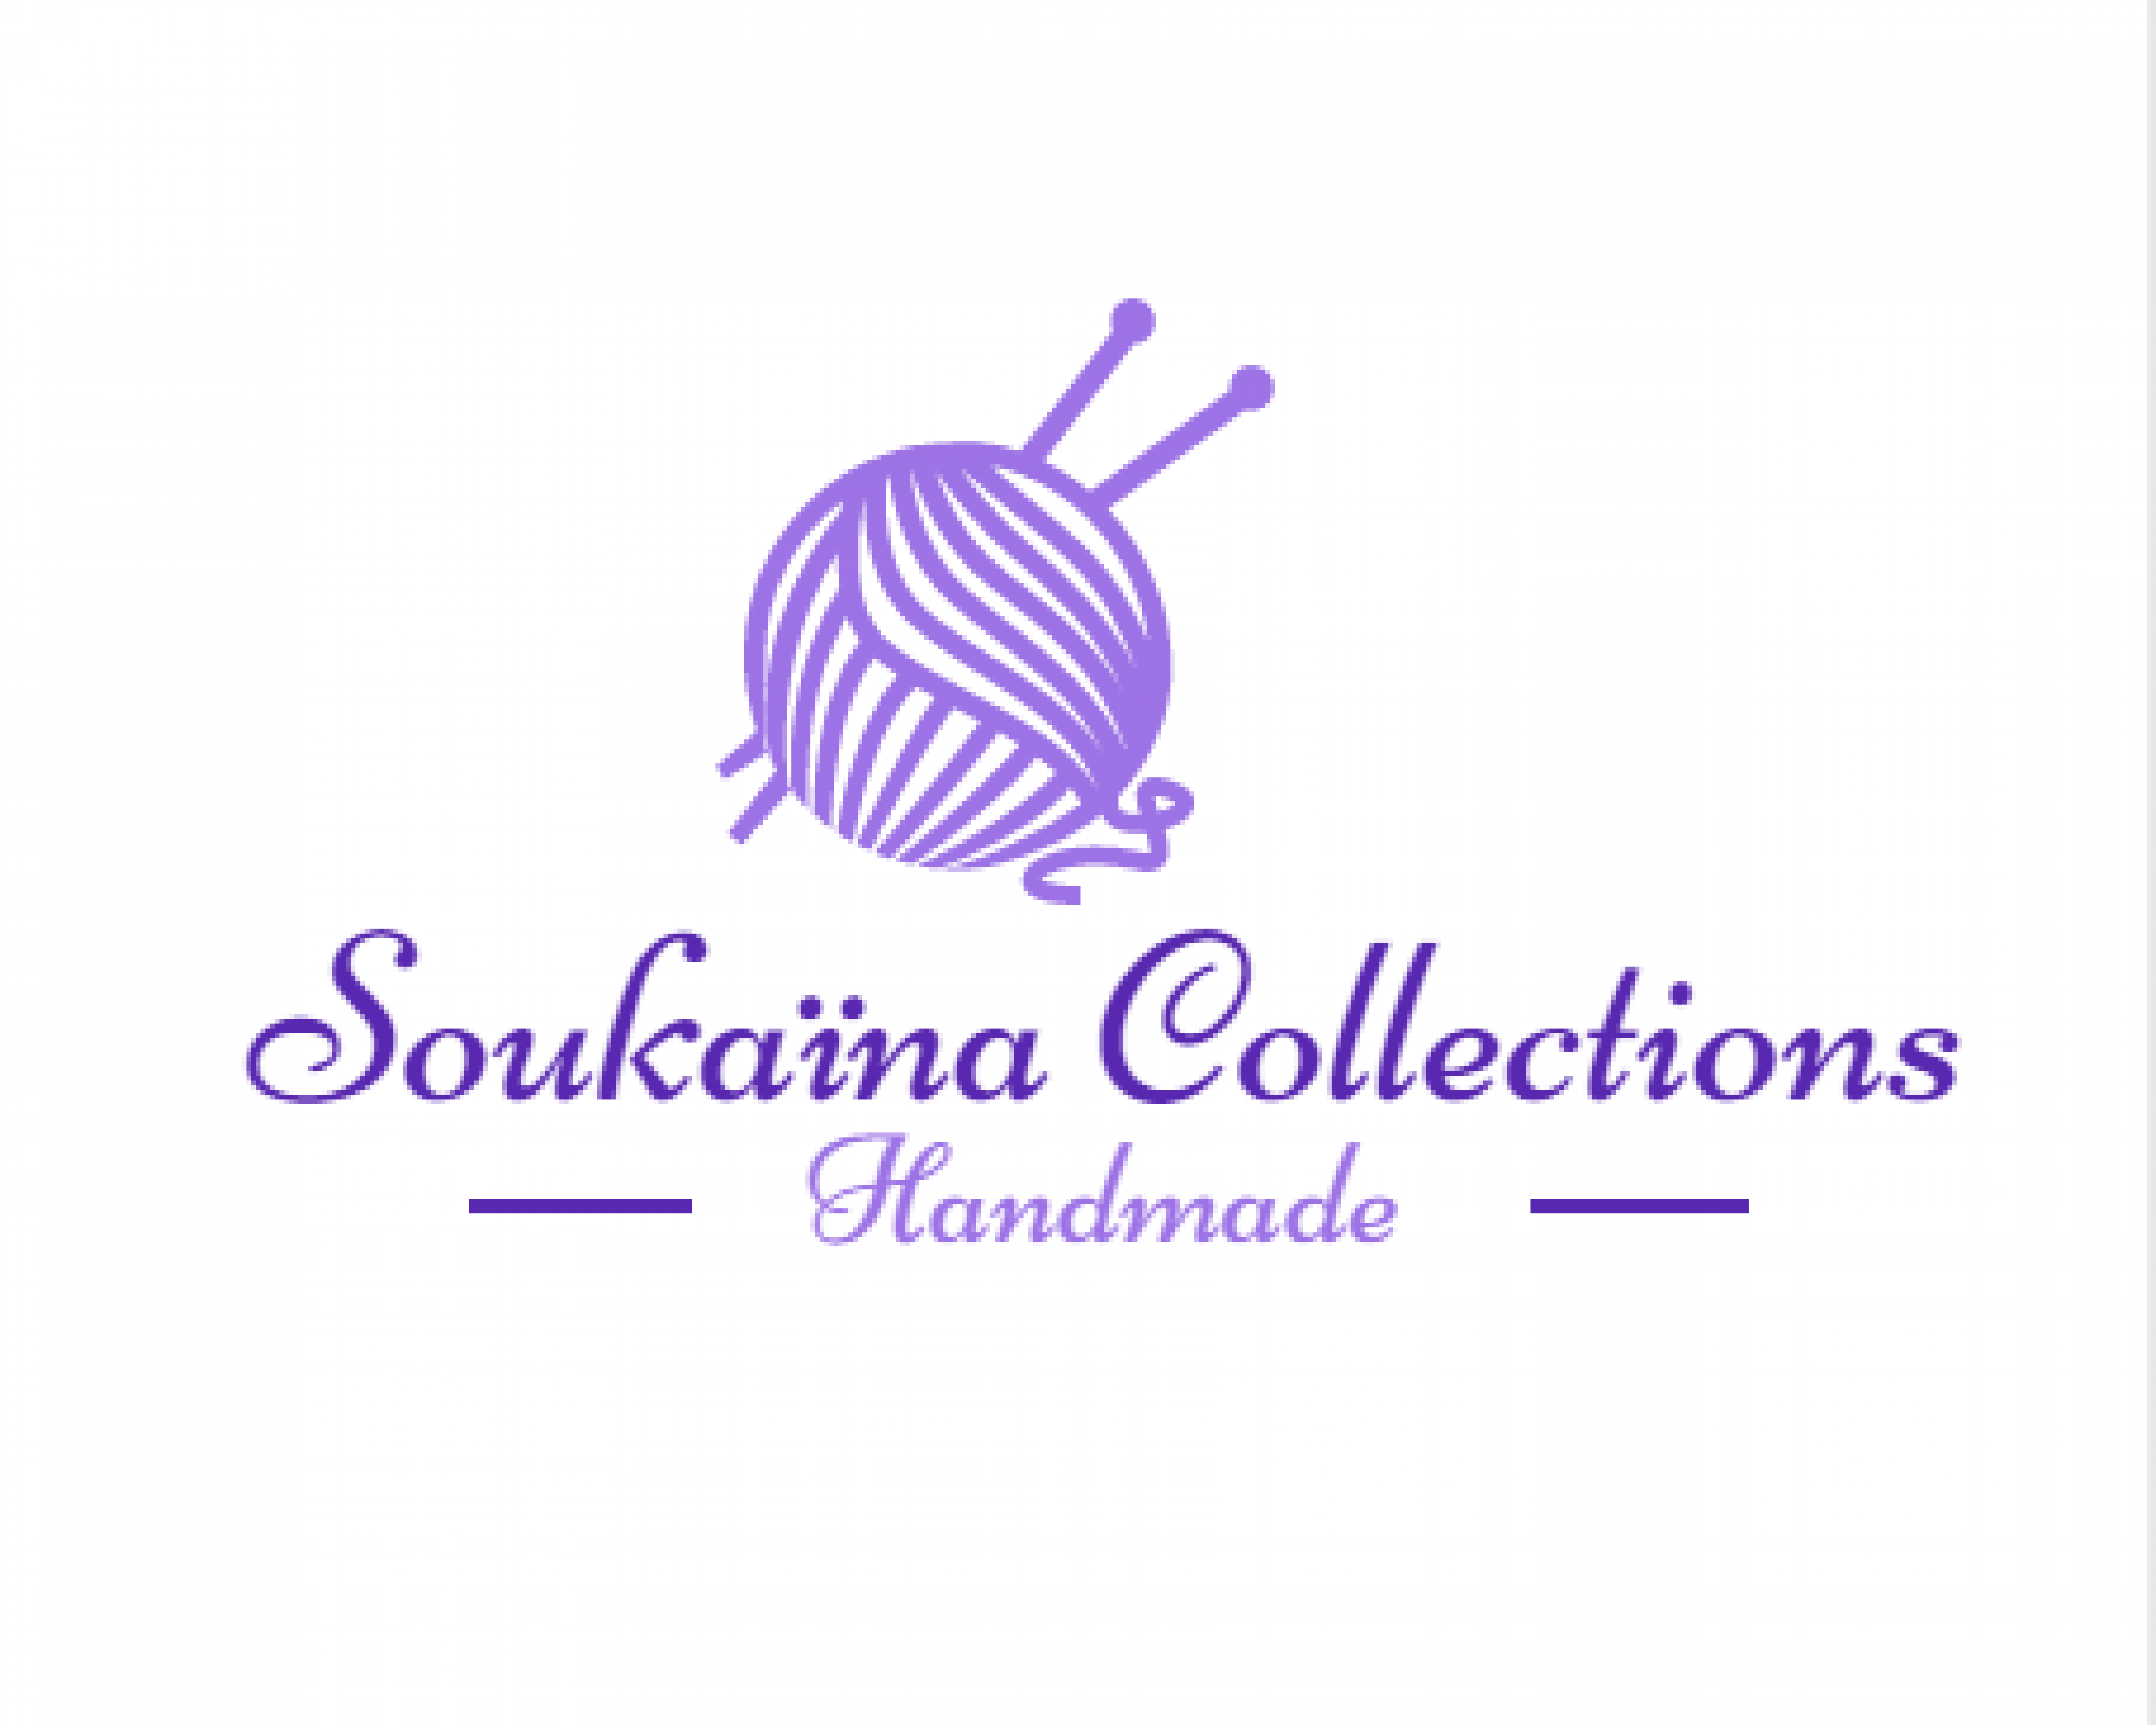 Soukaina Collections